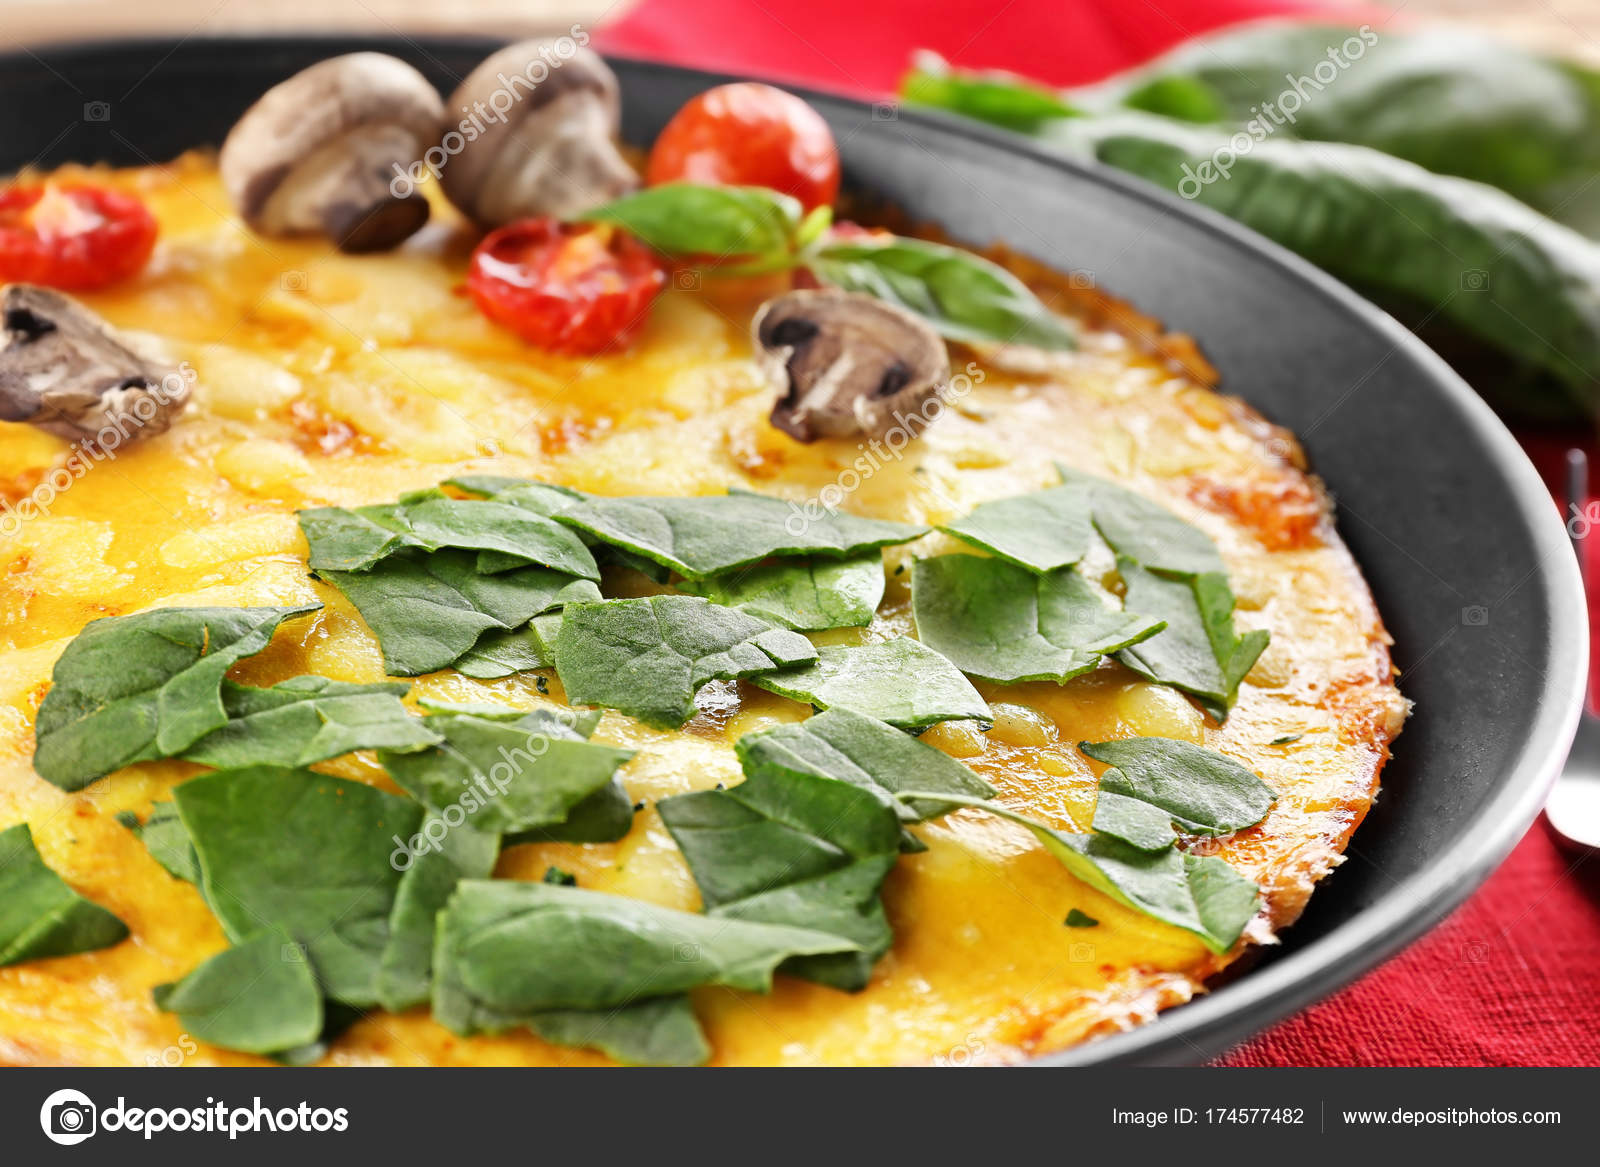 Tasty Frittata With Spinach Stock Photo Image By C Belchonock 174577482